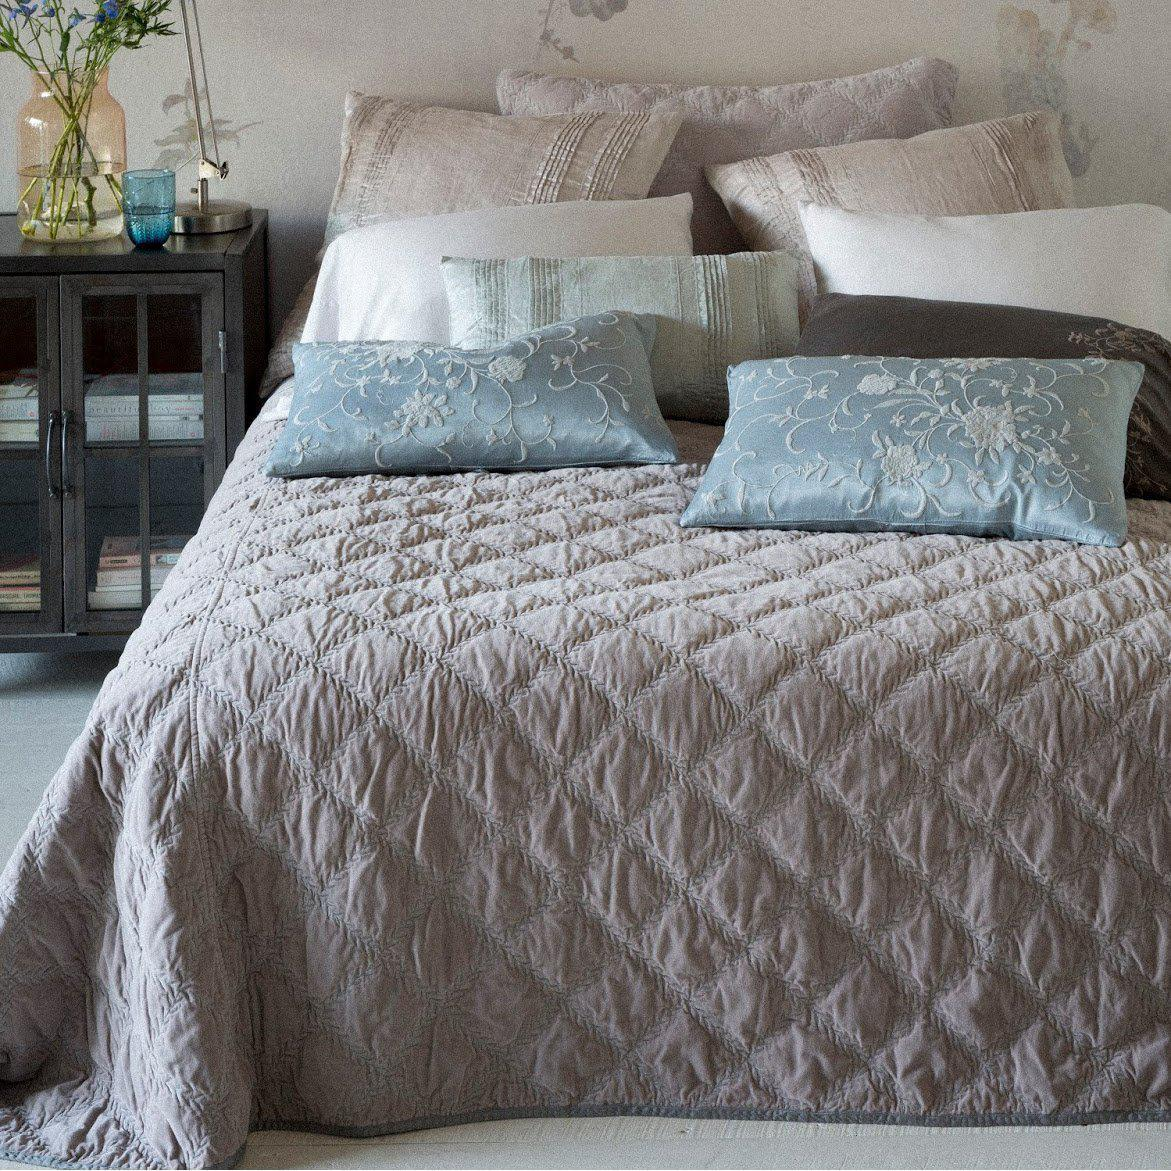 Bella Notte Linens Marseille Coverlet-Bed & Bath-Queen-Parchment-A Cottage in the City